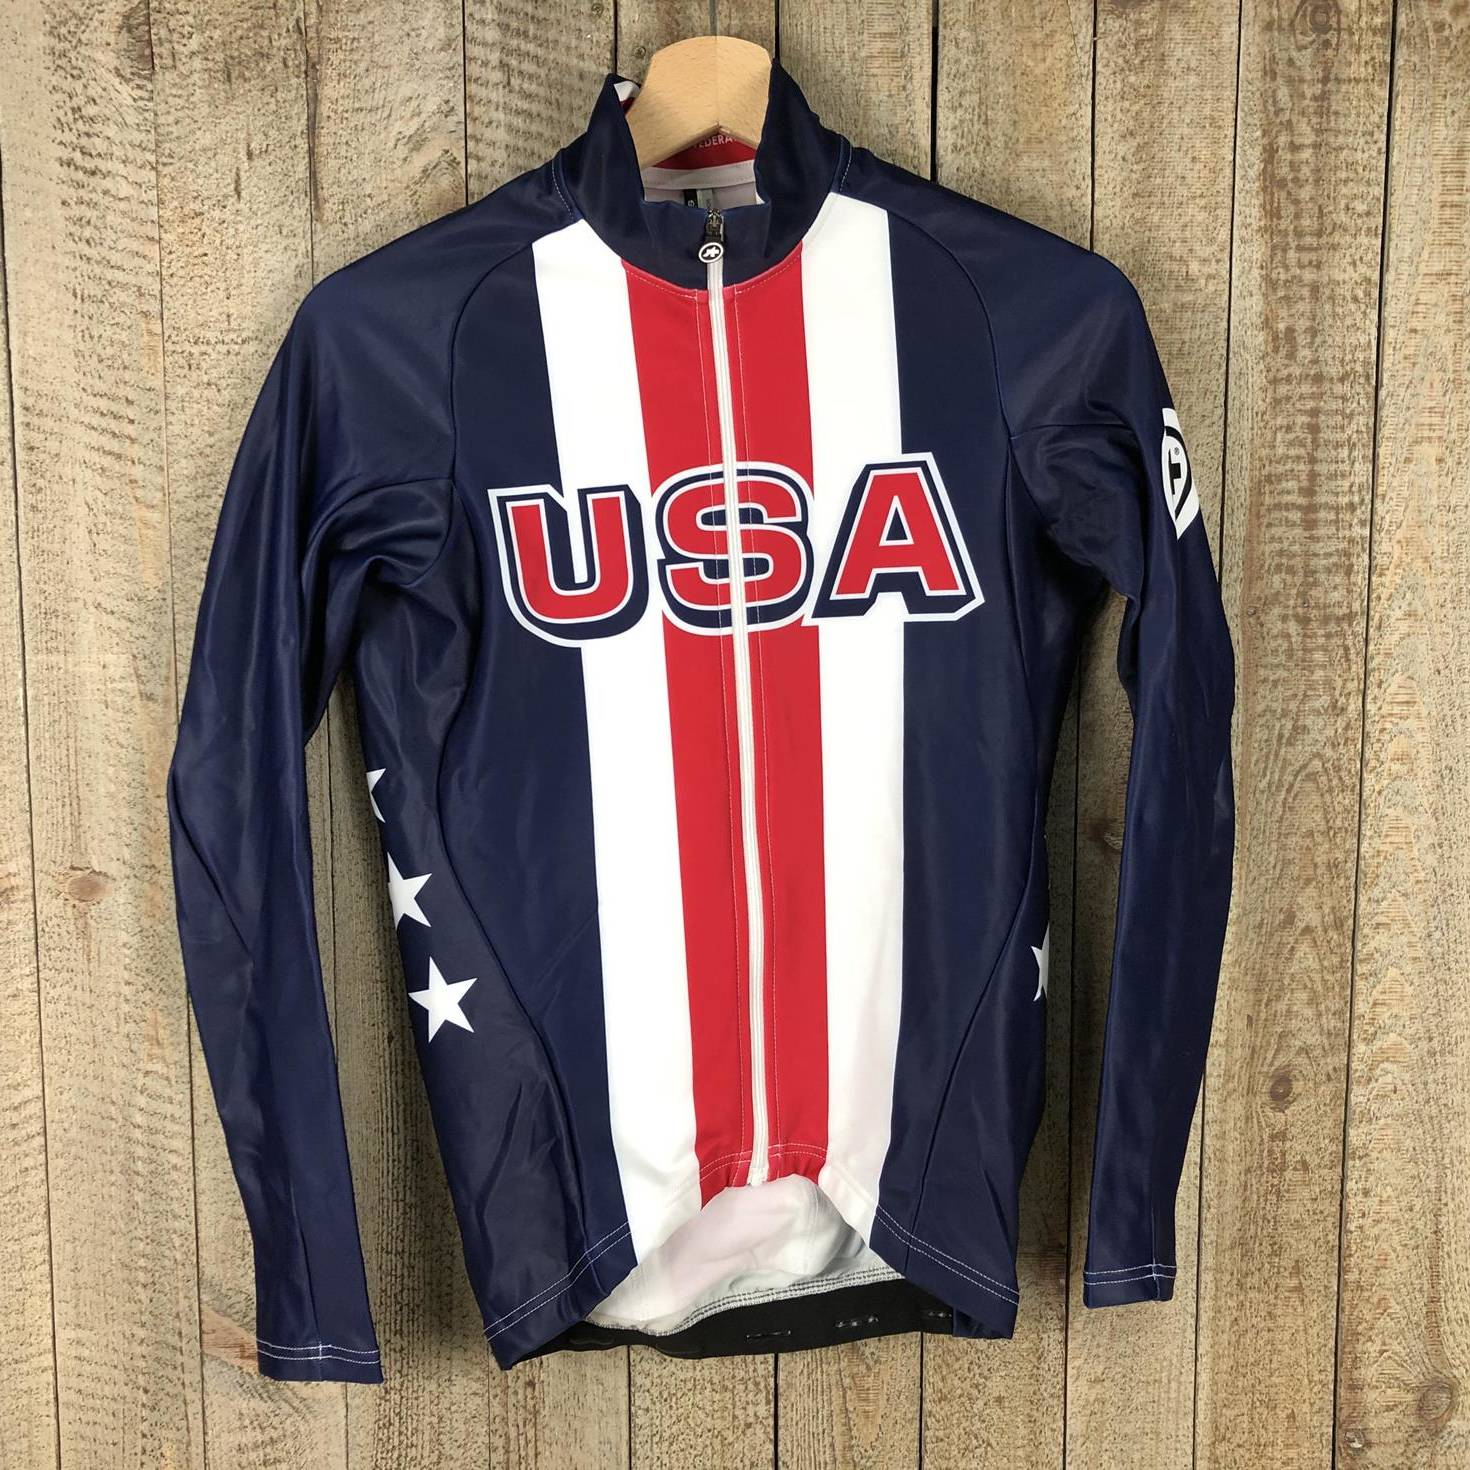 Long Sleeve Jersey - USA Cycling National Team 00003231 (1)